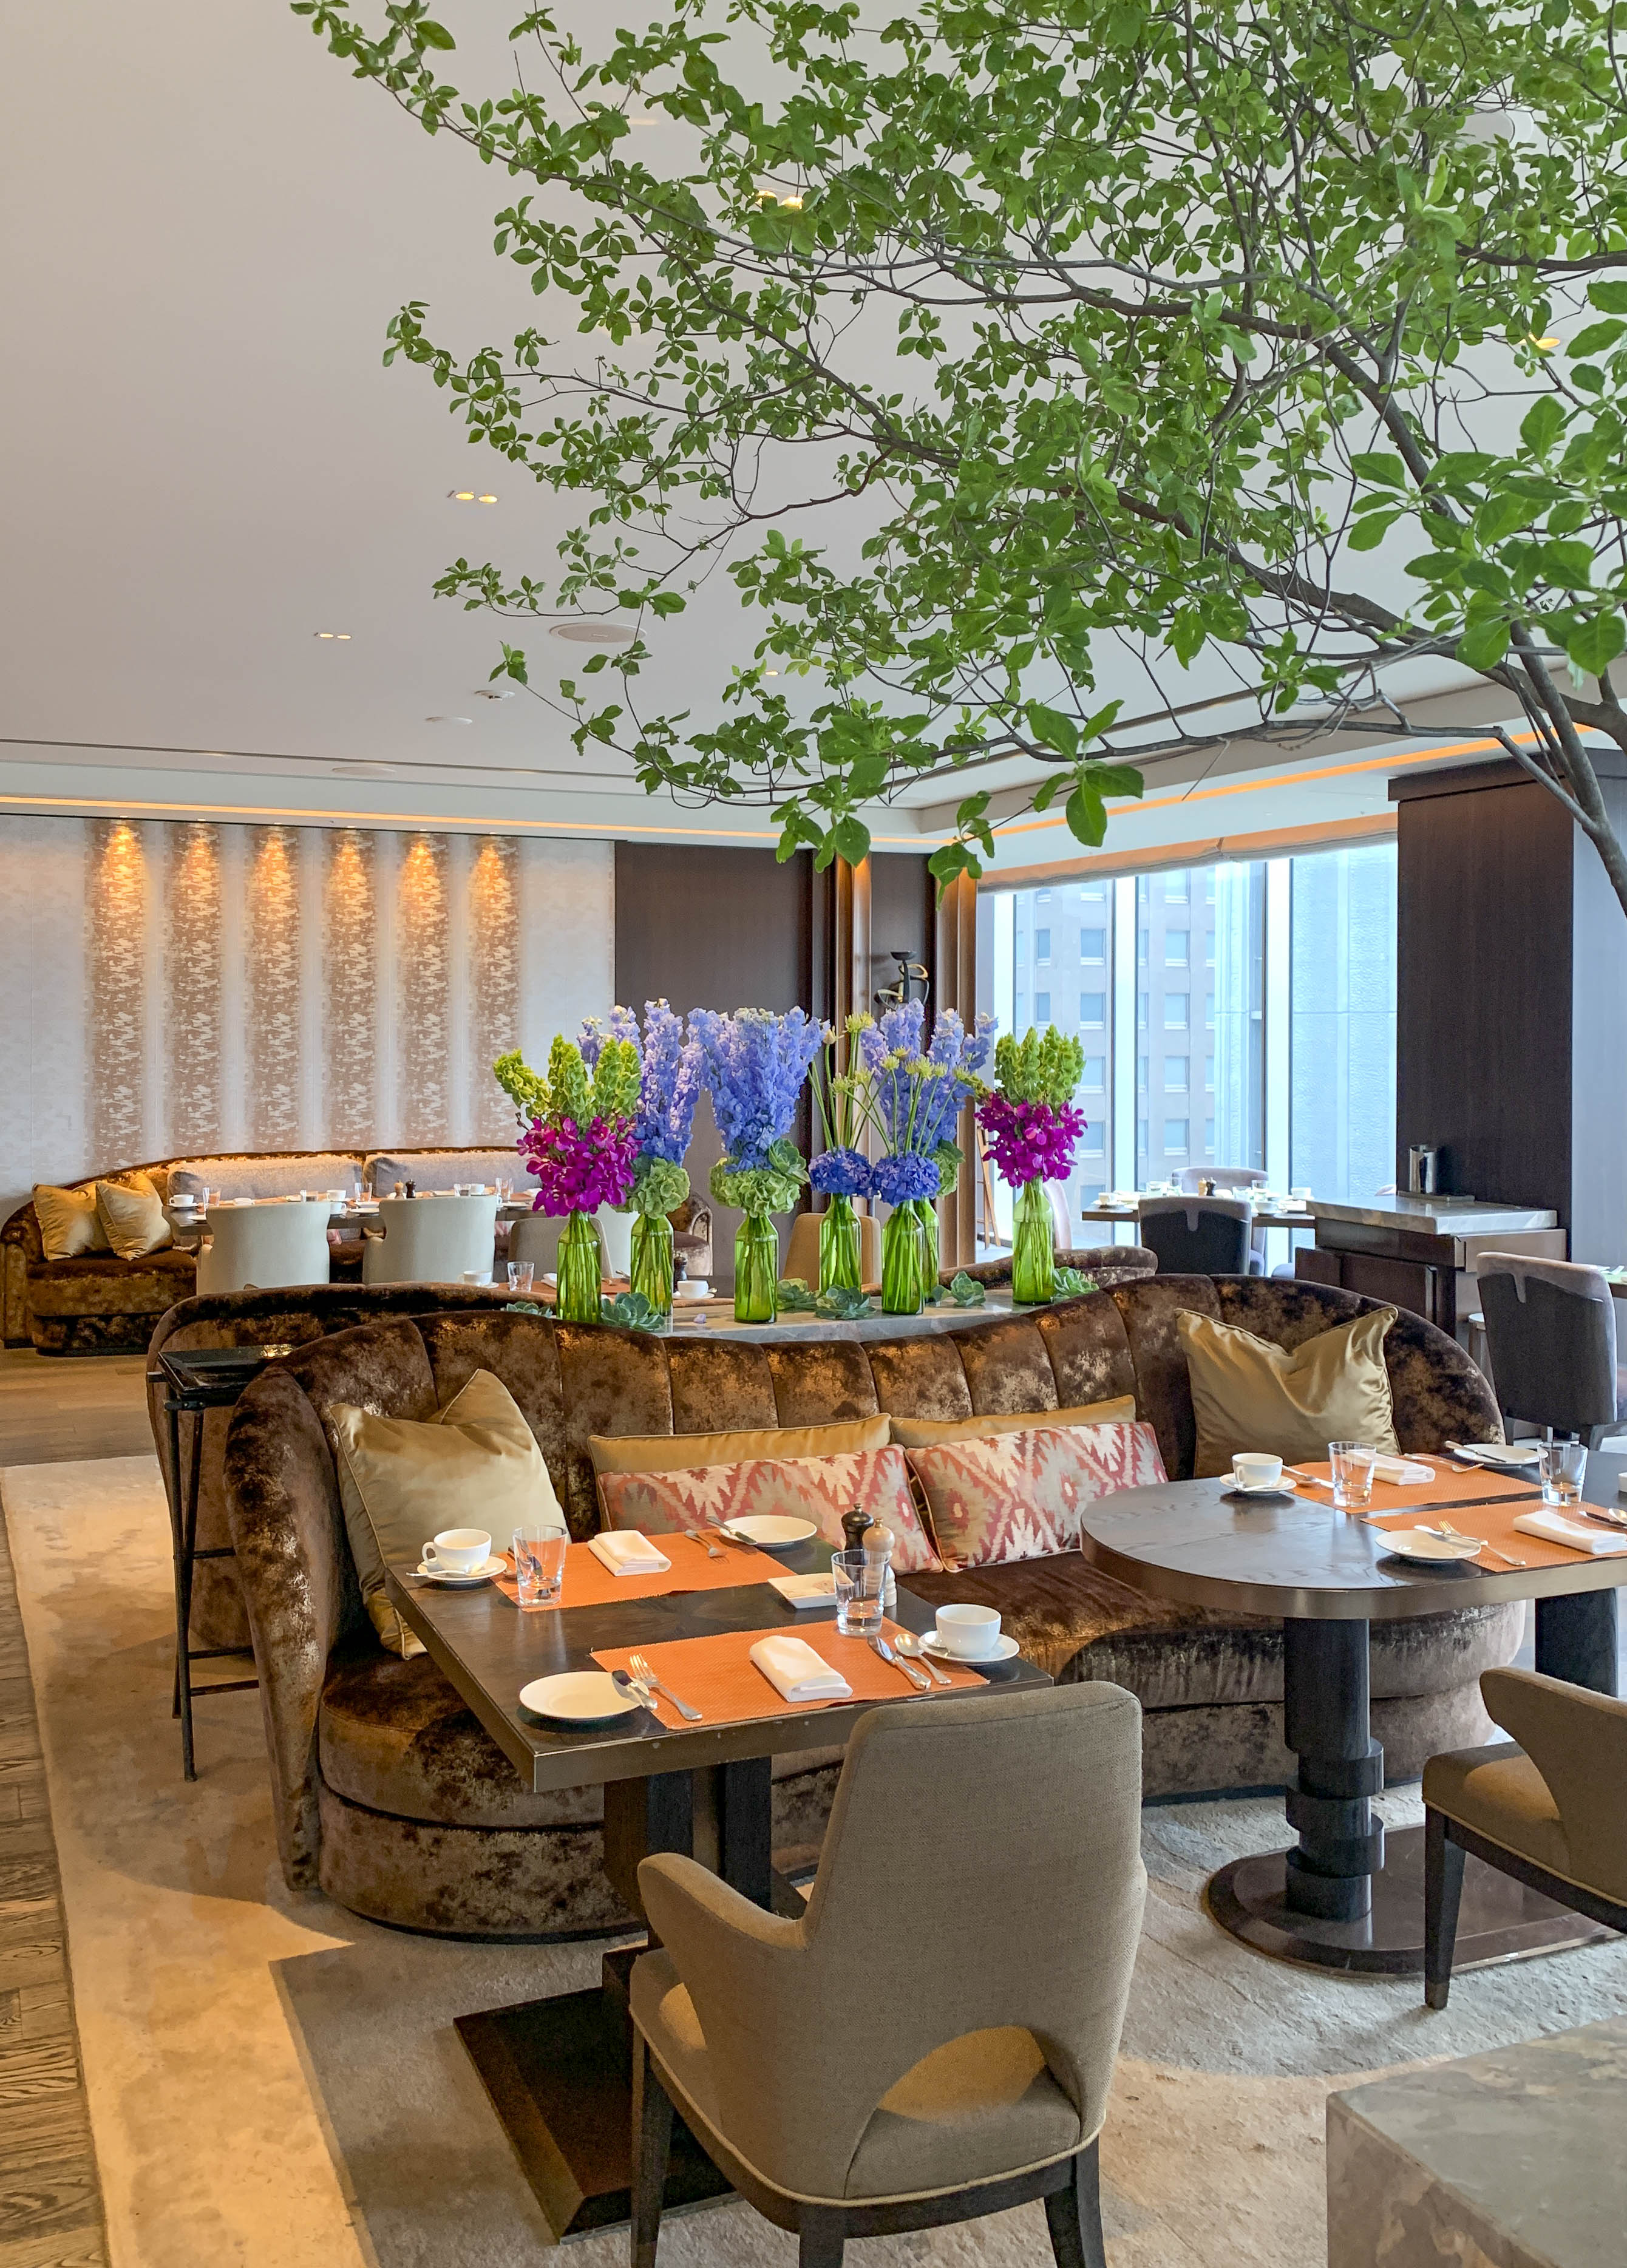 Plush seating, hydrangea flower arrangements and tree inside Motif in the early morning.